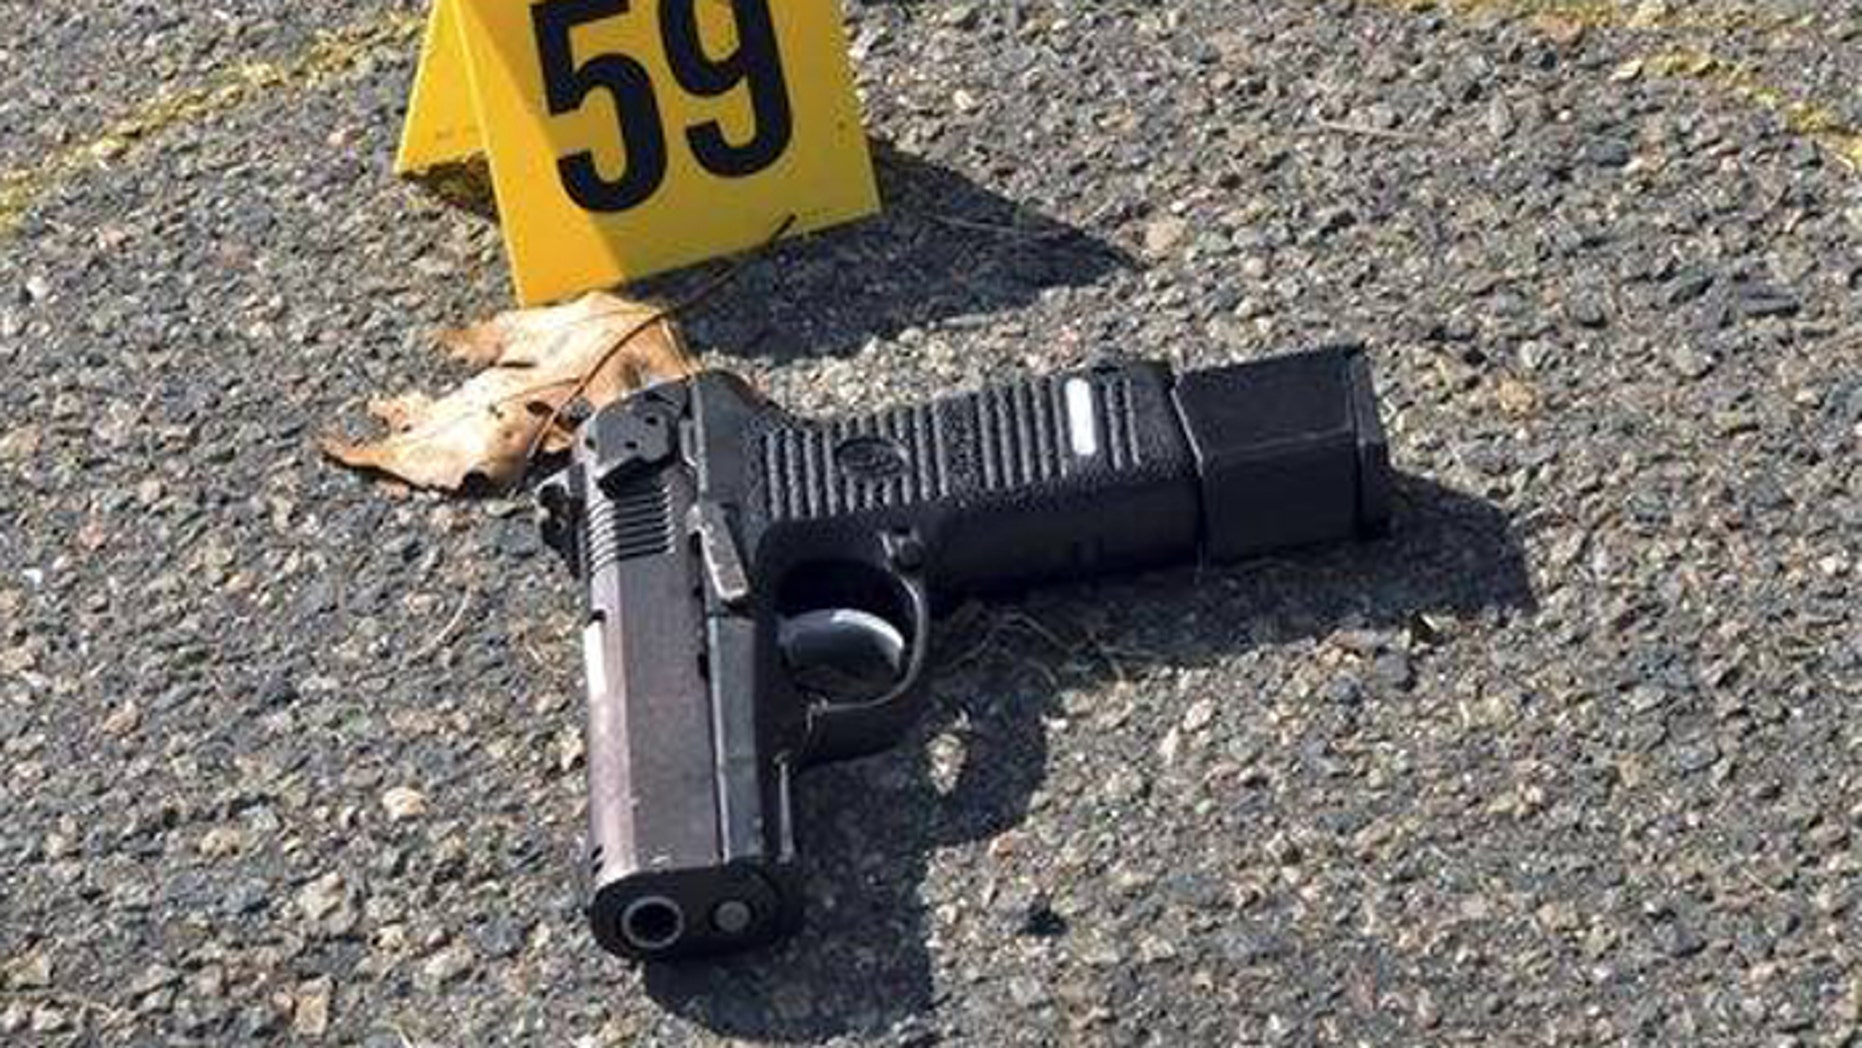 Organizers say local reporters covering gun crimes are often unable to put the events in a broader context. (AP)